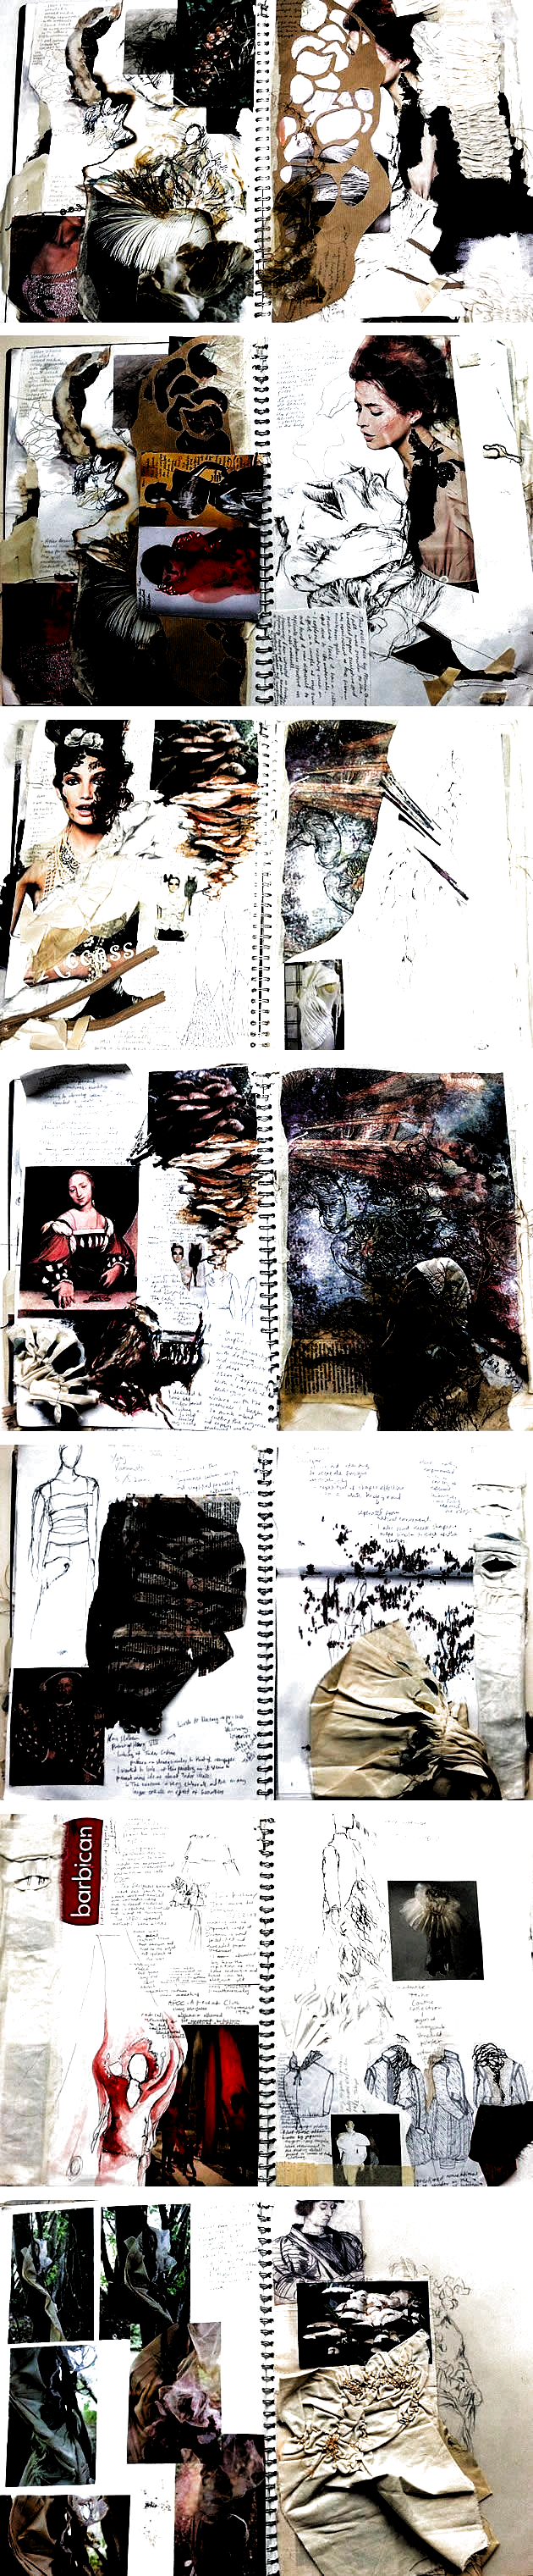 #fasionfotography #fasionsketchbook #fasiondrawing #fasionrunway #sketchbook #beautiful #portfolio #textiles #halima #level #pages #by #aA Level Textiles: Beautiful Sketchbook Pages -  A* A Level Textiles portfolio by Halima  -A Level Textiles: Beautiful Sketchbook Pages -  A* A Level Textiles portfolio by Halima  -  Super a level art sketchbook inspiration fashion design ideas - A Level Art Sketchbook -  Aether - 2013 | Handbound artists book | Louisa Boyd | Flickr  About textile — Kirs...